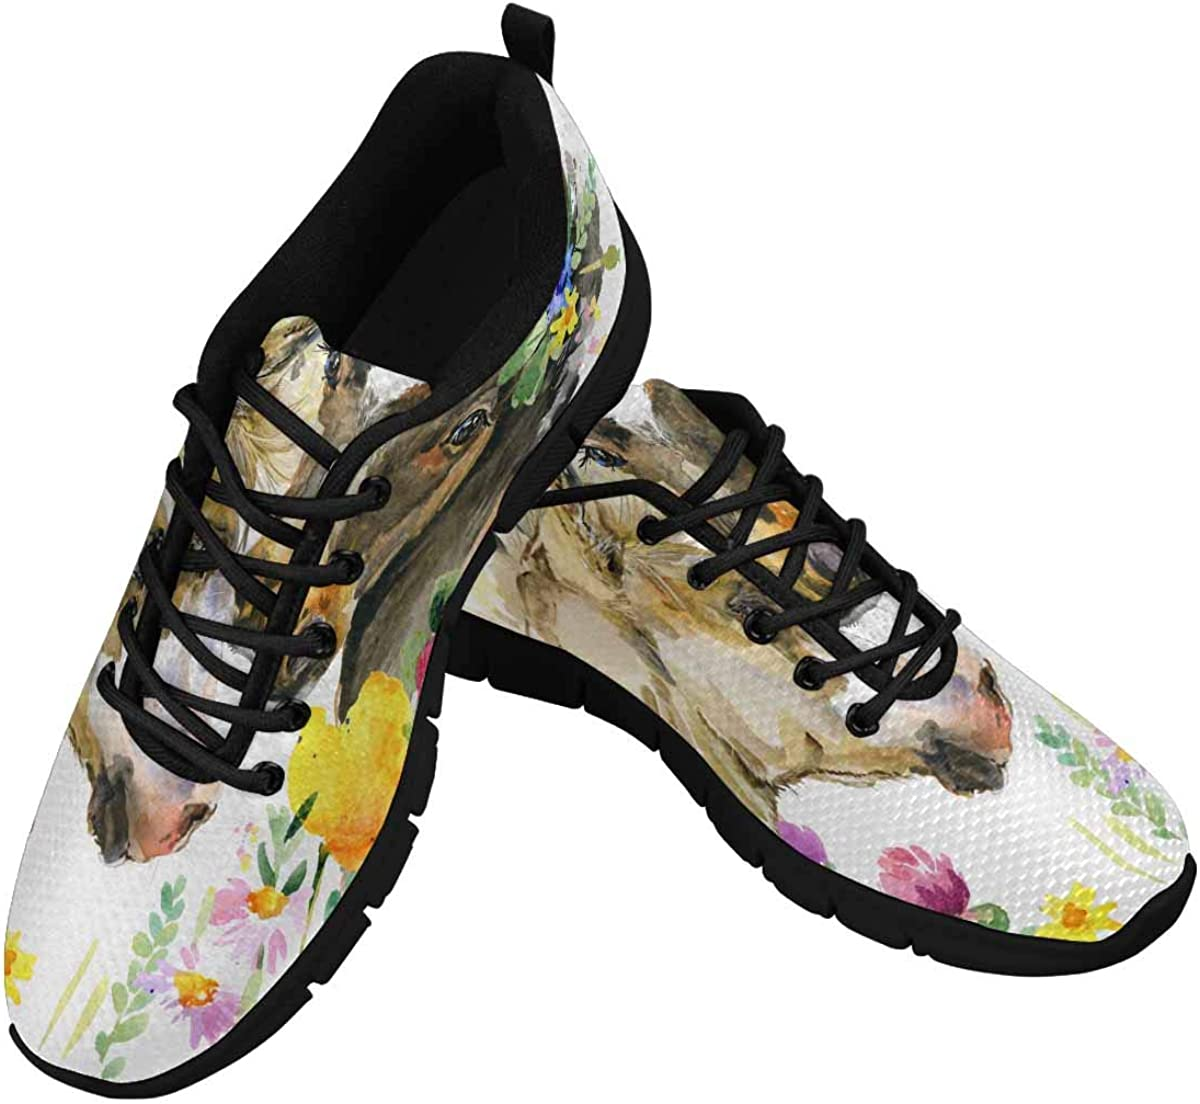 INTERESTPRINT Watercolor Florals Horse Women's Breathable Comfort Mesh Fashion Sneakers